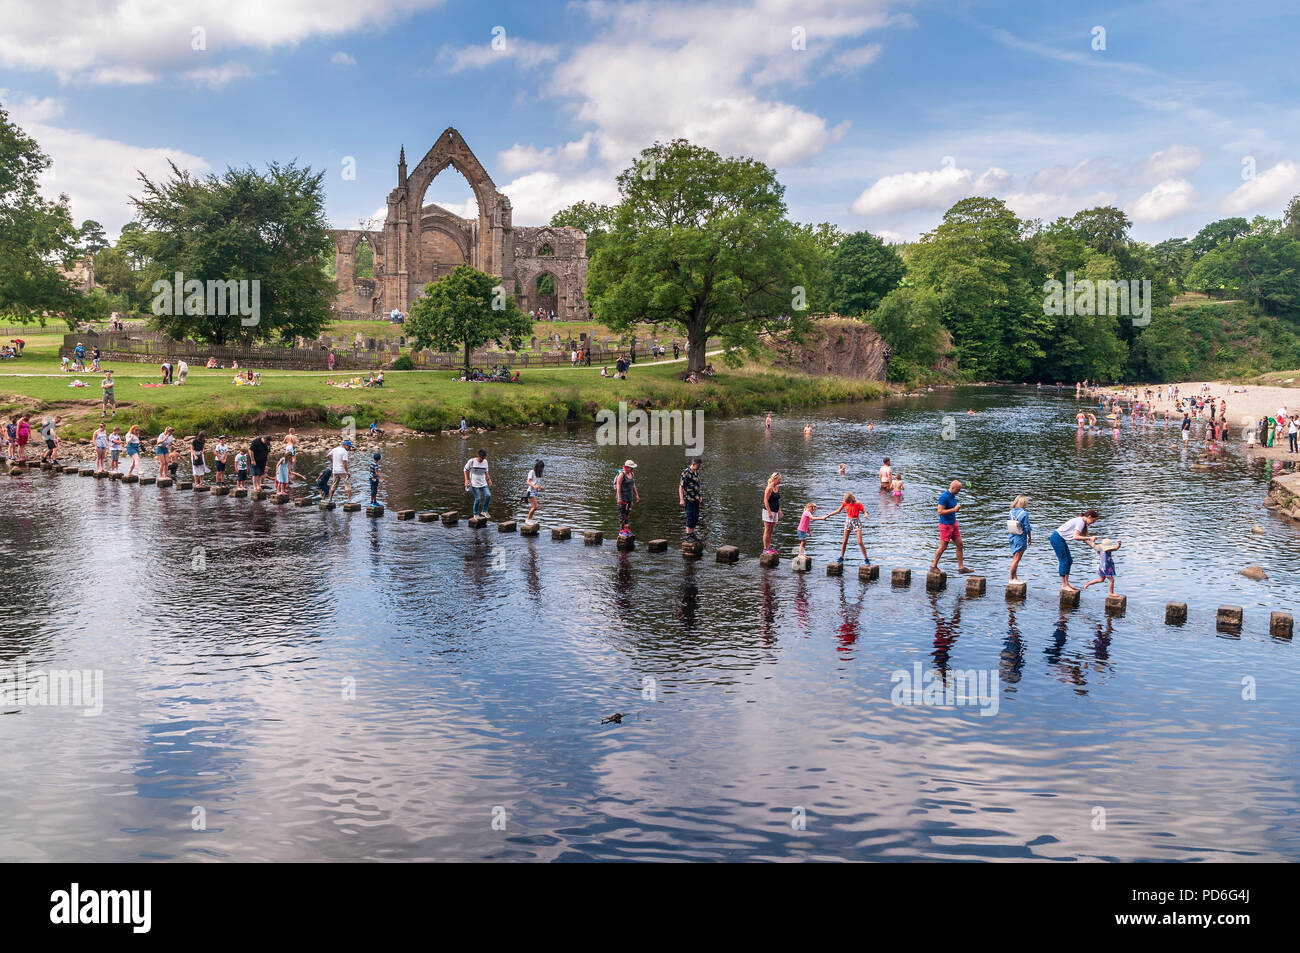 Bolton Abbey. West Yorkshire. River Wharfe. Stepping stones - Stock Image